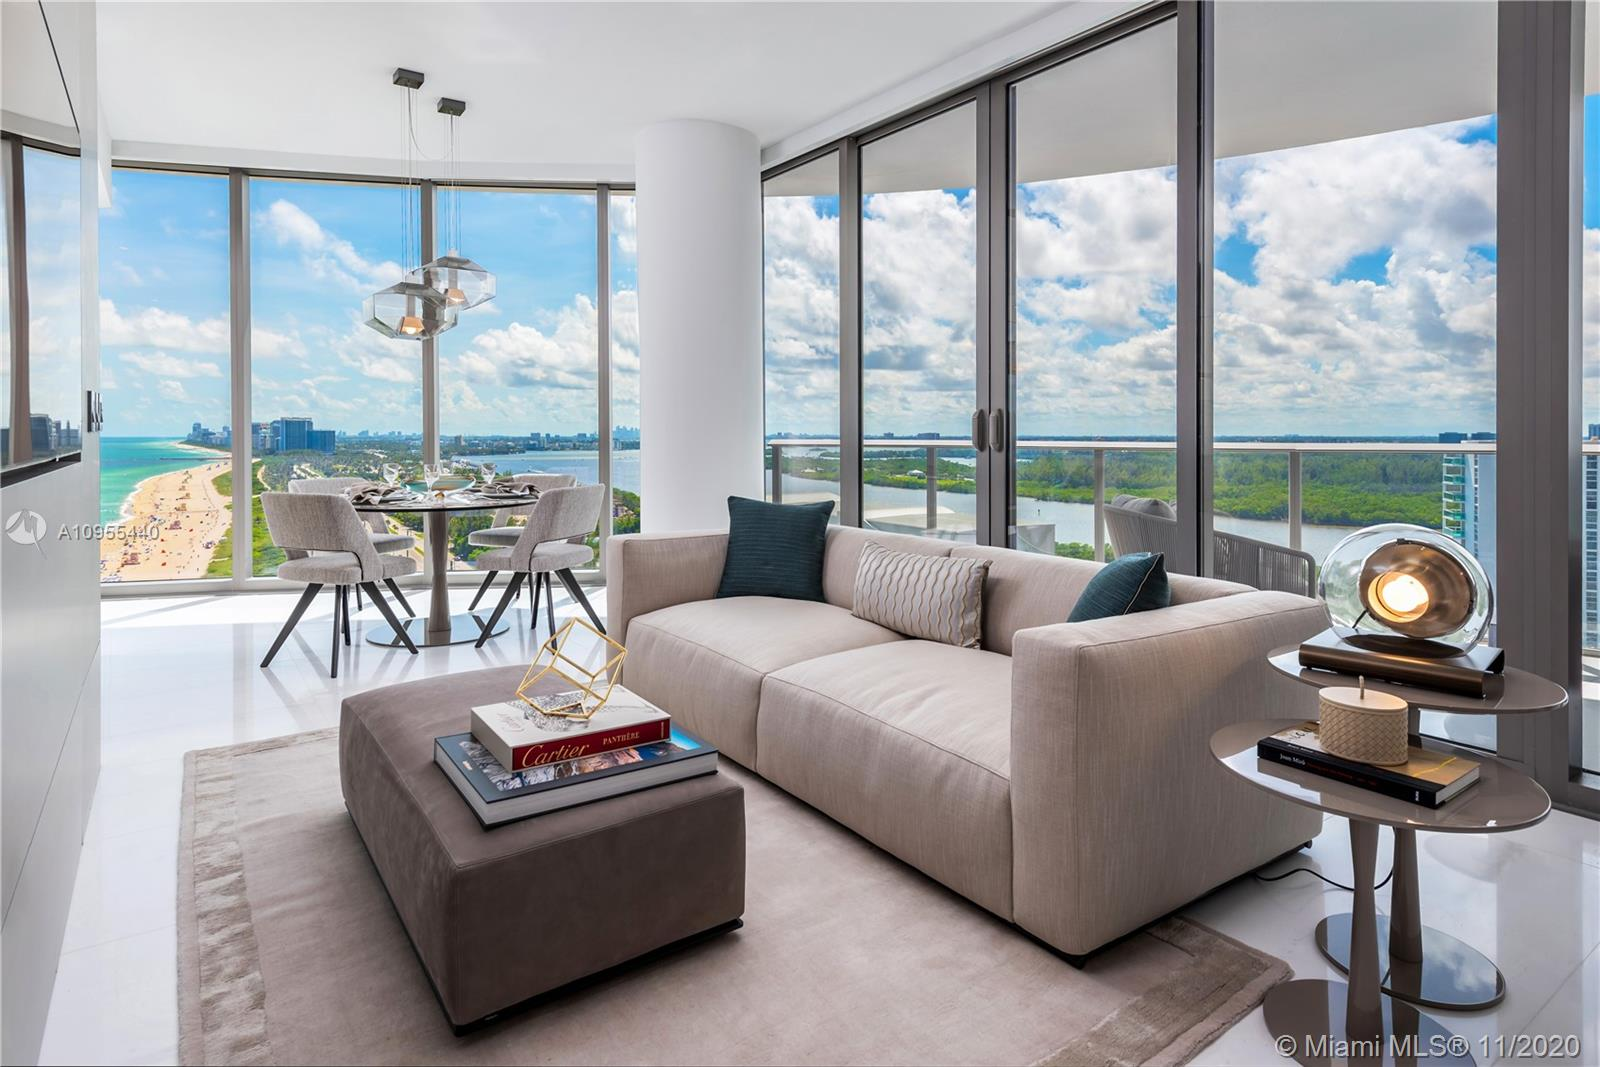 15701 Collins Ave, Unit #1805 Luxury Real Estate